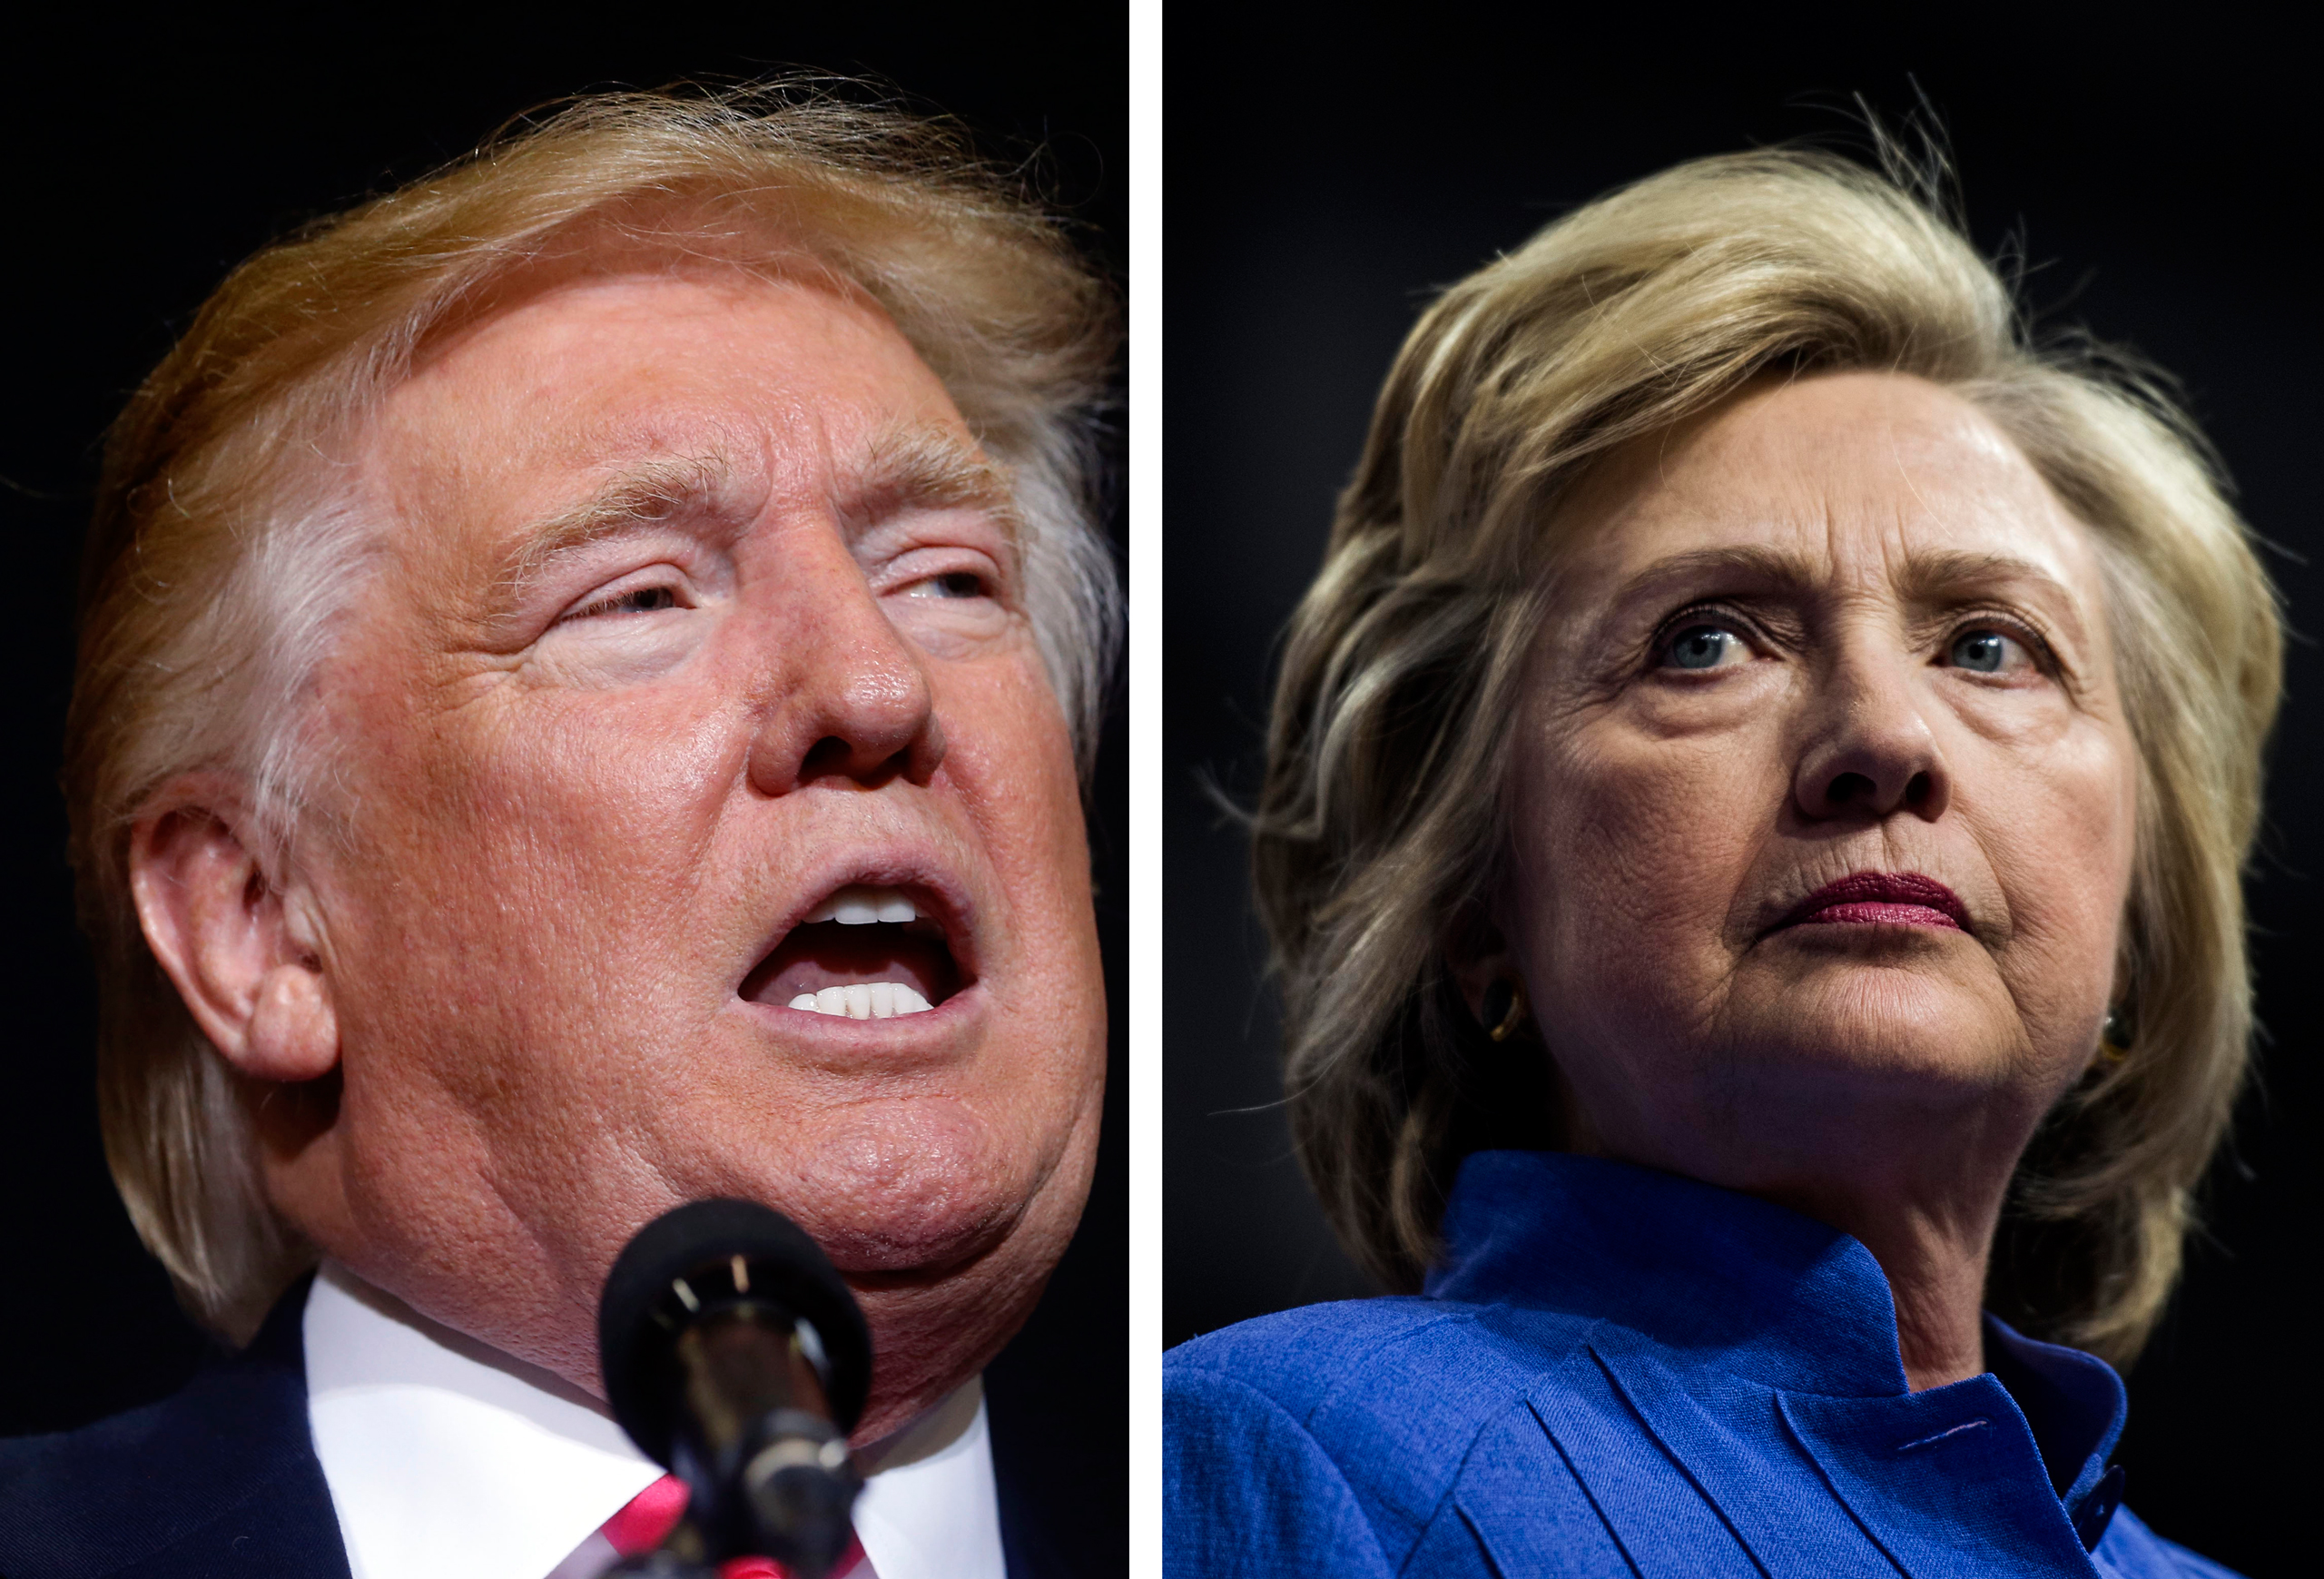 Left: Donald Trump arrives to speak at a campaign rally in Manchester, N.H., on Aug. 25, 2016.  Right: Hillary Clinton rallies with Vice President Joe Biden in Scranton, Pa. on Aug. 15, 2016.